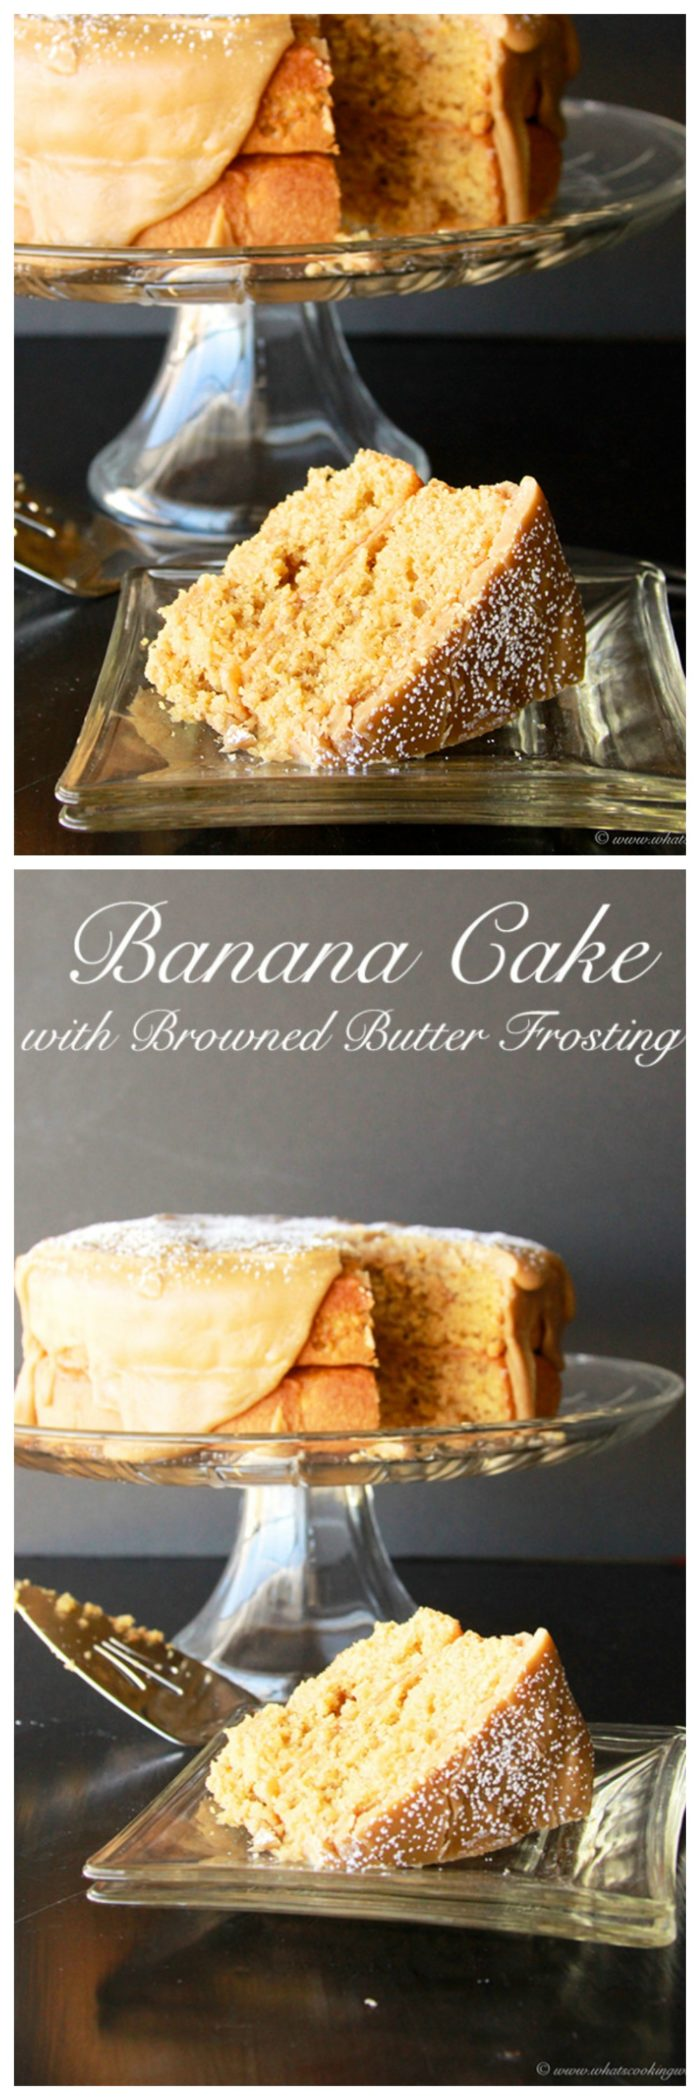 Our Banana Cake with Browned Butter Frosting Recipe is a simply lovely cake to celebrate any occasion!by cookingwithruthie.com